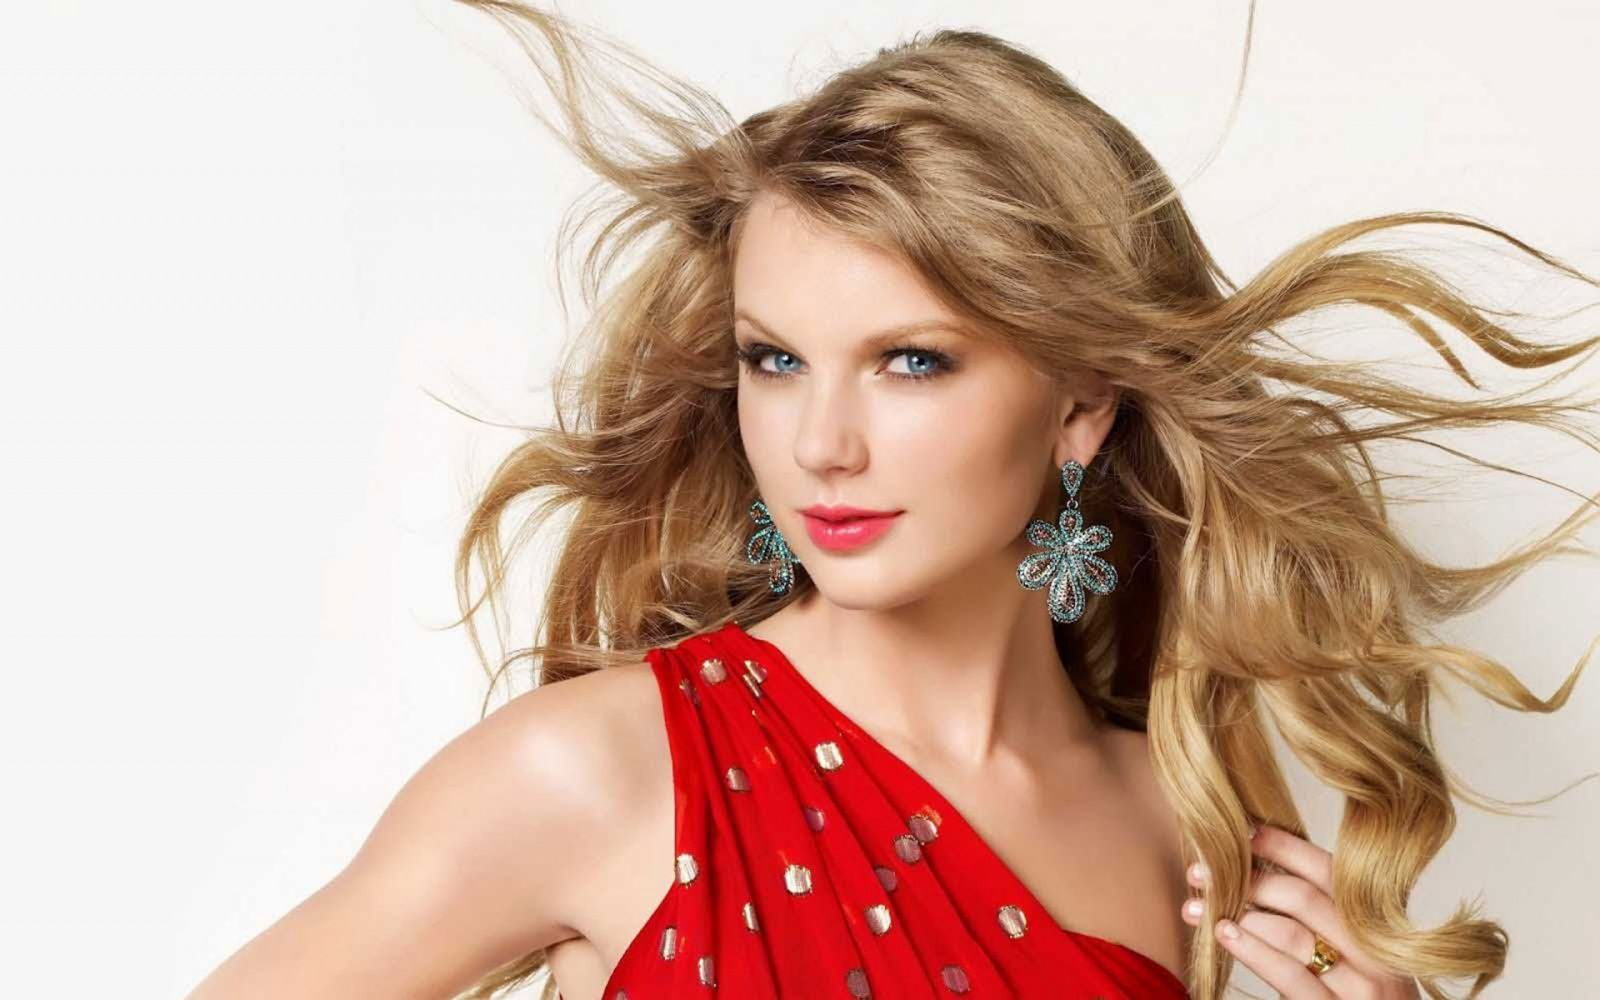 Is Swift's NME award a middle finger to her 'Haters'?